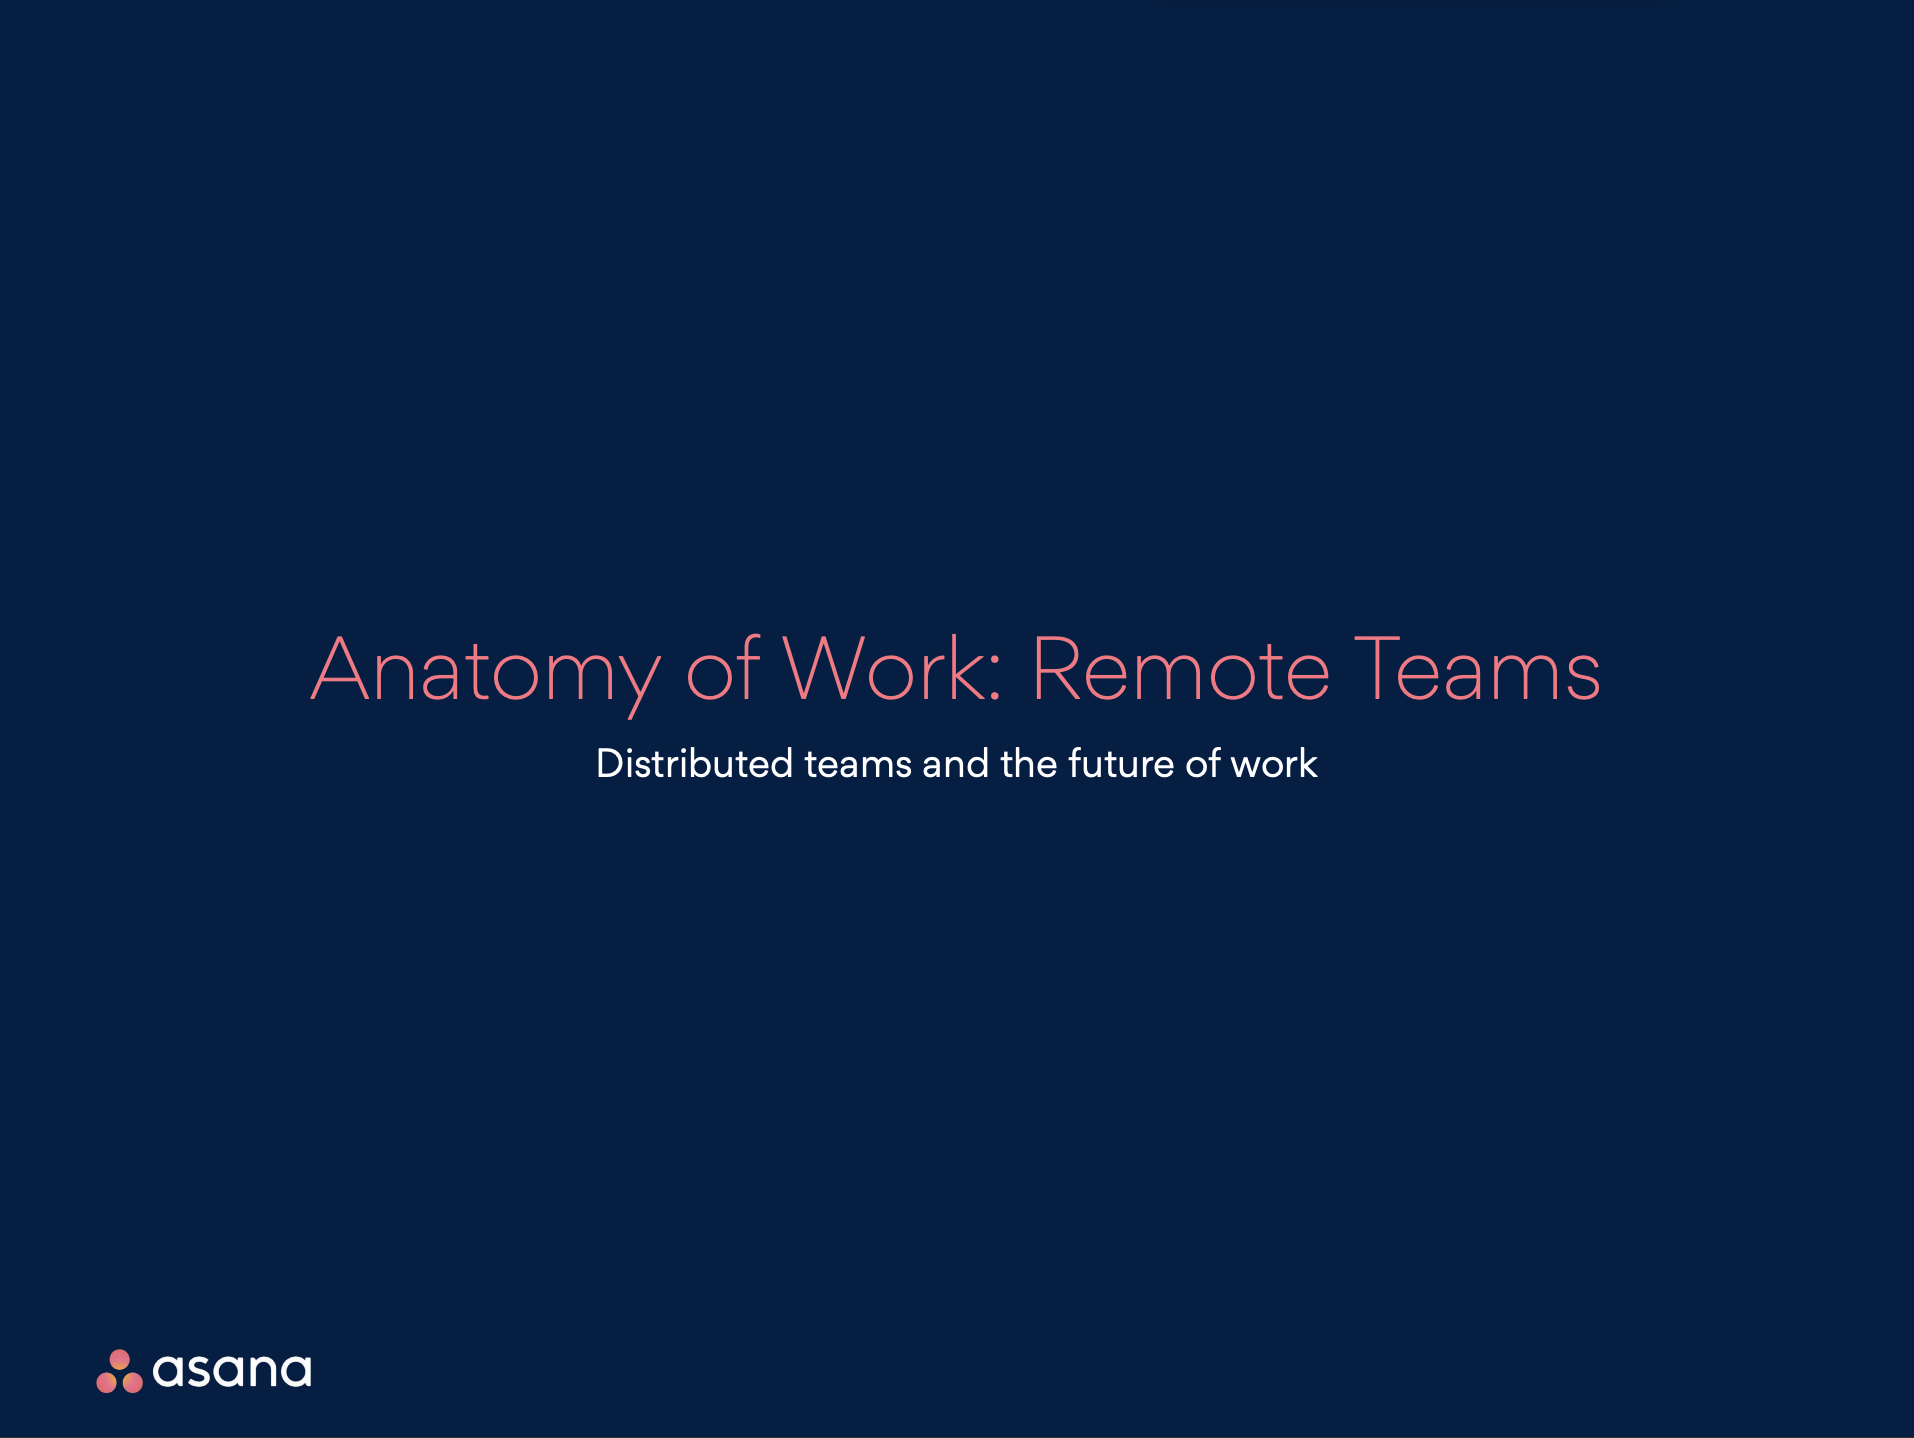 Asana - Anatomy of Work - Remote Teams report - Cover